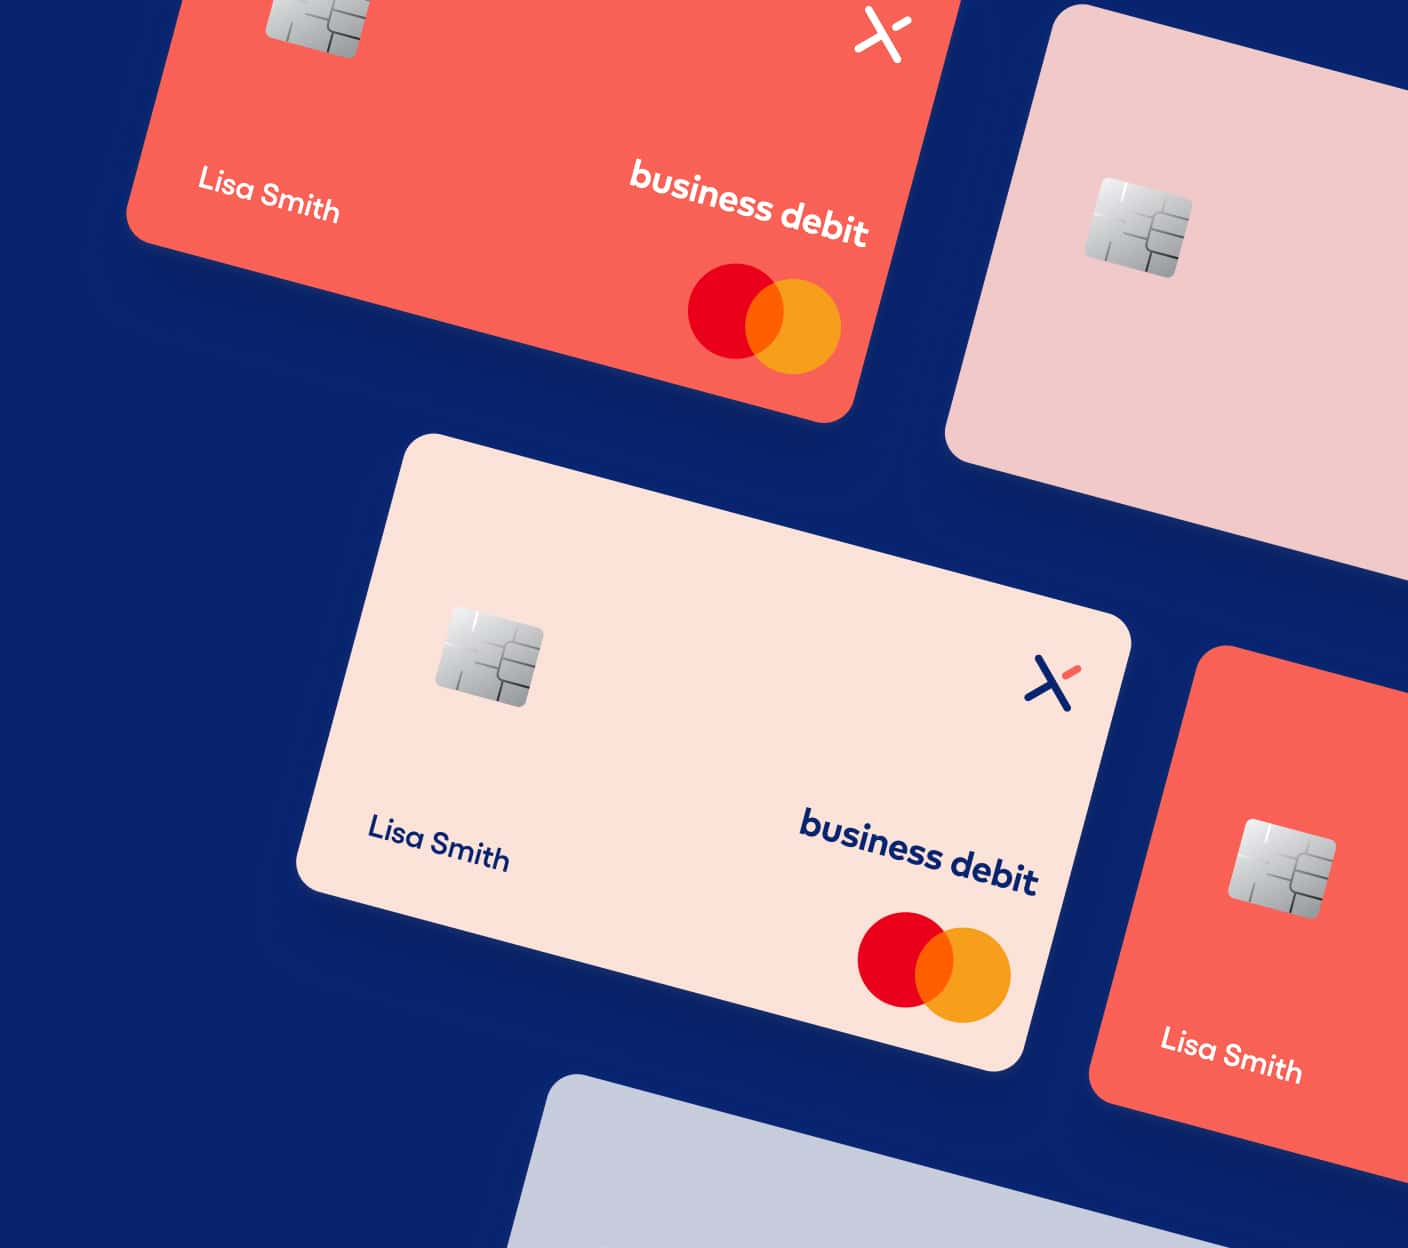 Image of debit cards